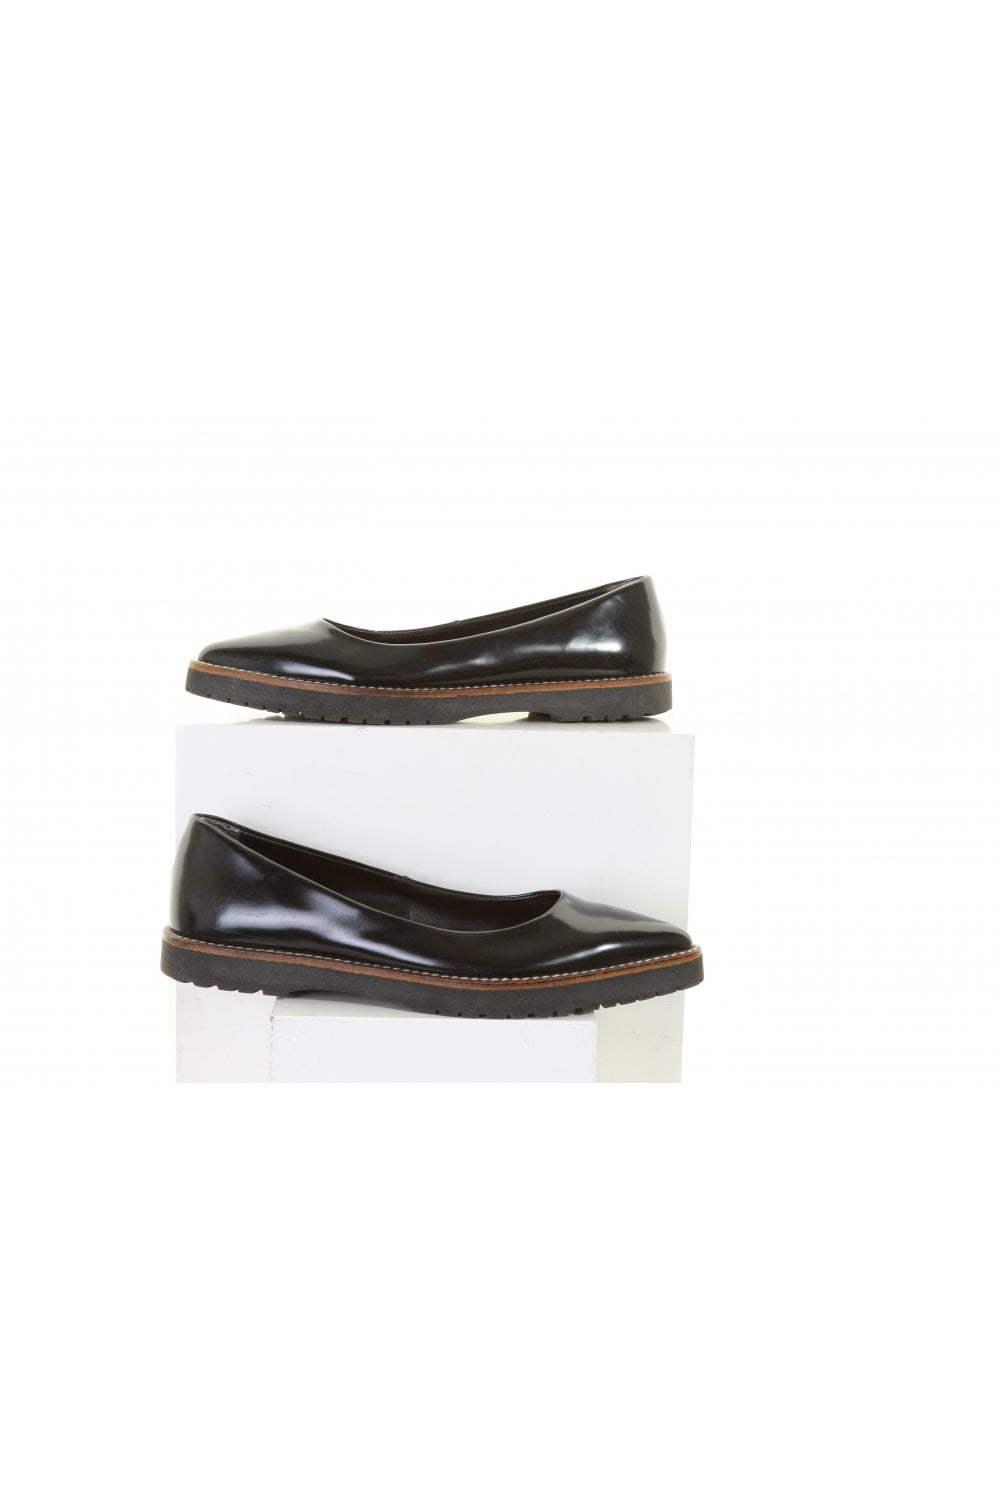 Zara Shoes Womens From Daisy Chain Project Teesside Uk Zara shoes are on the list of most desired footwear among men and women. daisy chain